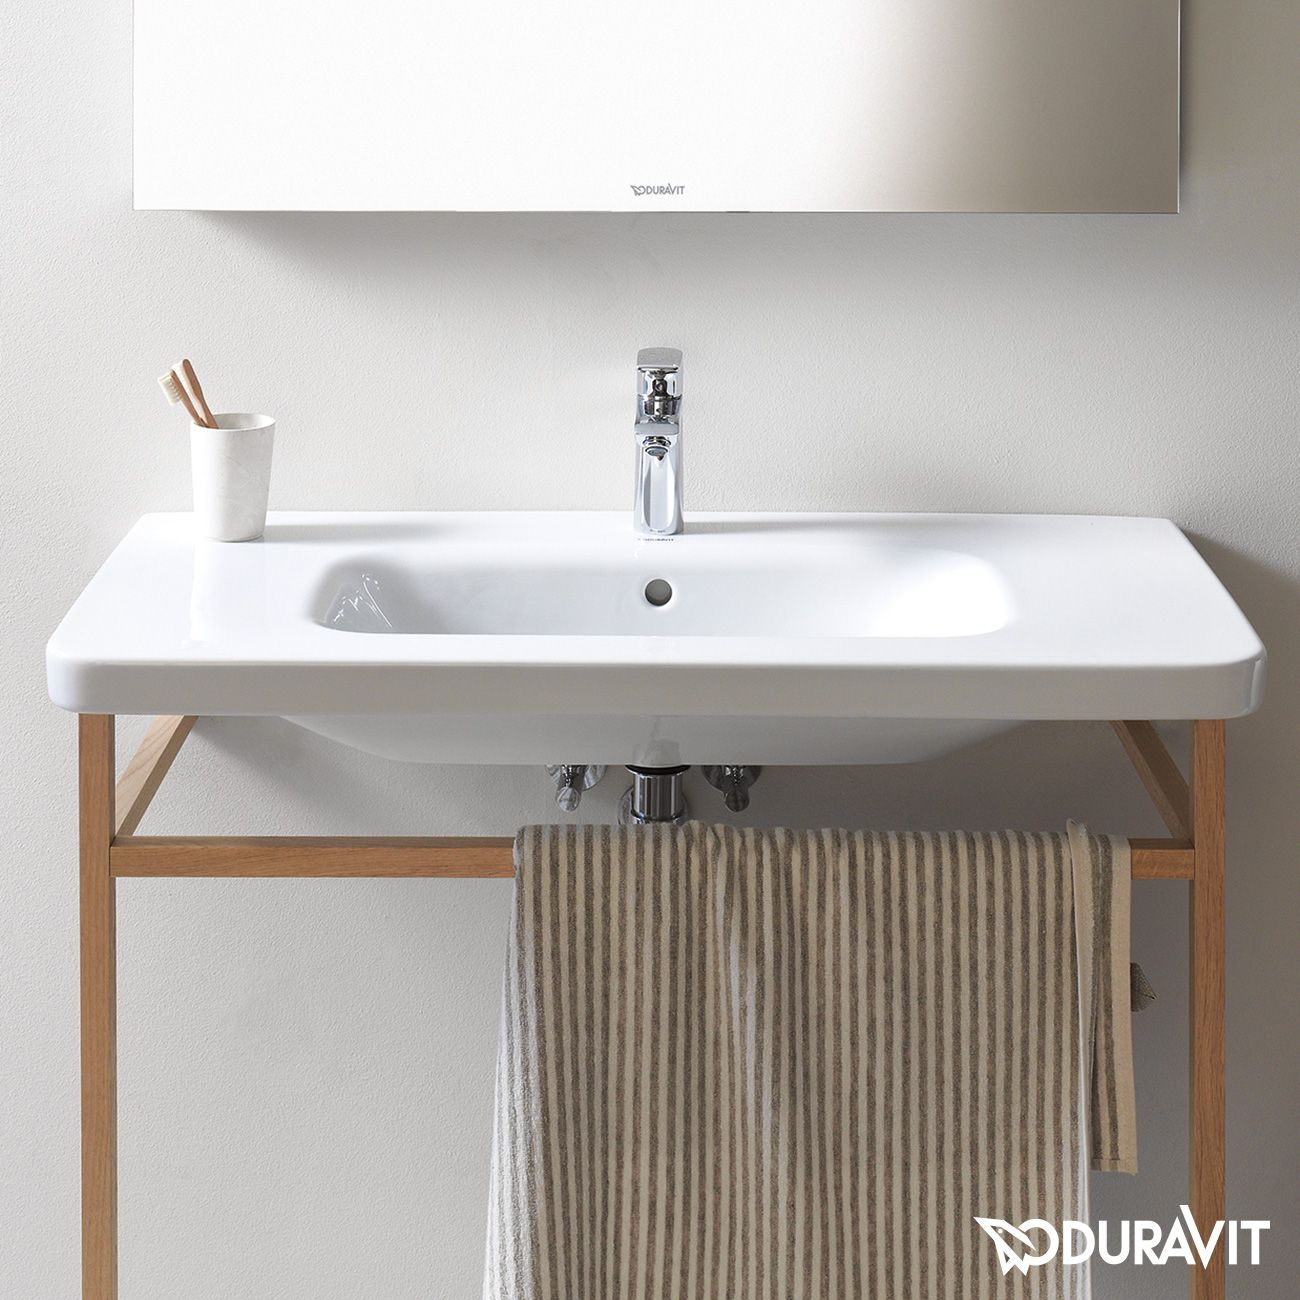 Stone texture seamless 07738 as well exterior wall tiles texture - 1000 Images About Interior Bathroom On Pinterest Beautiful Hands Vanities And Duravit